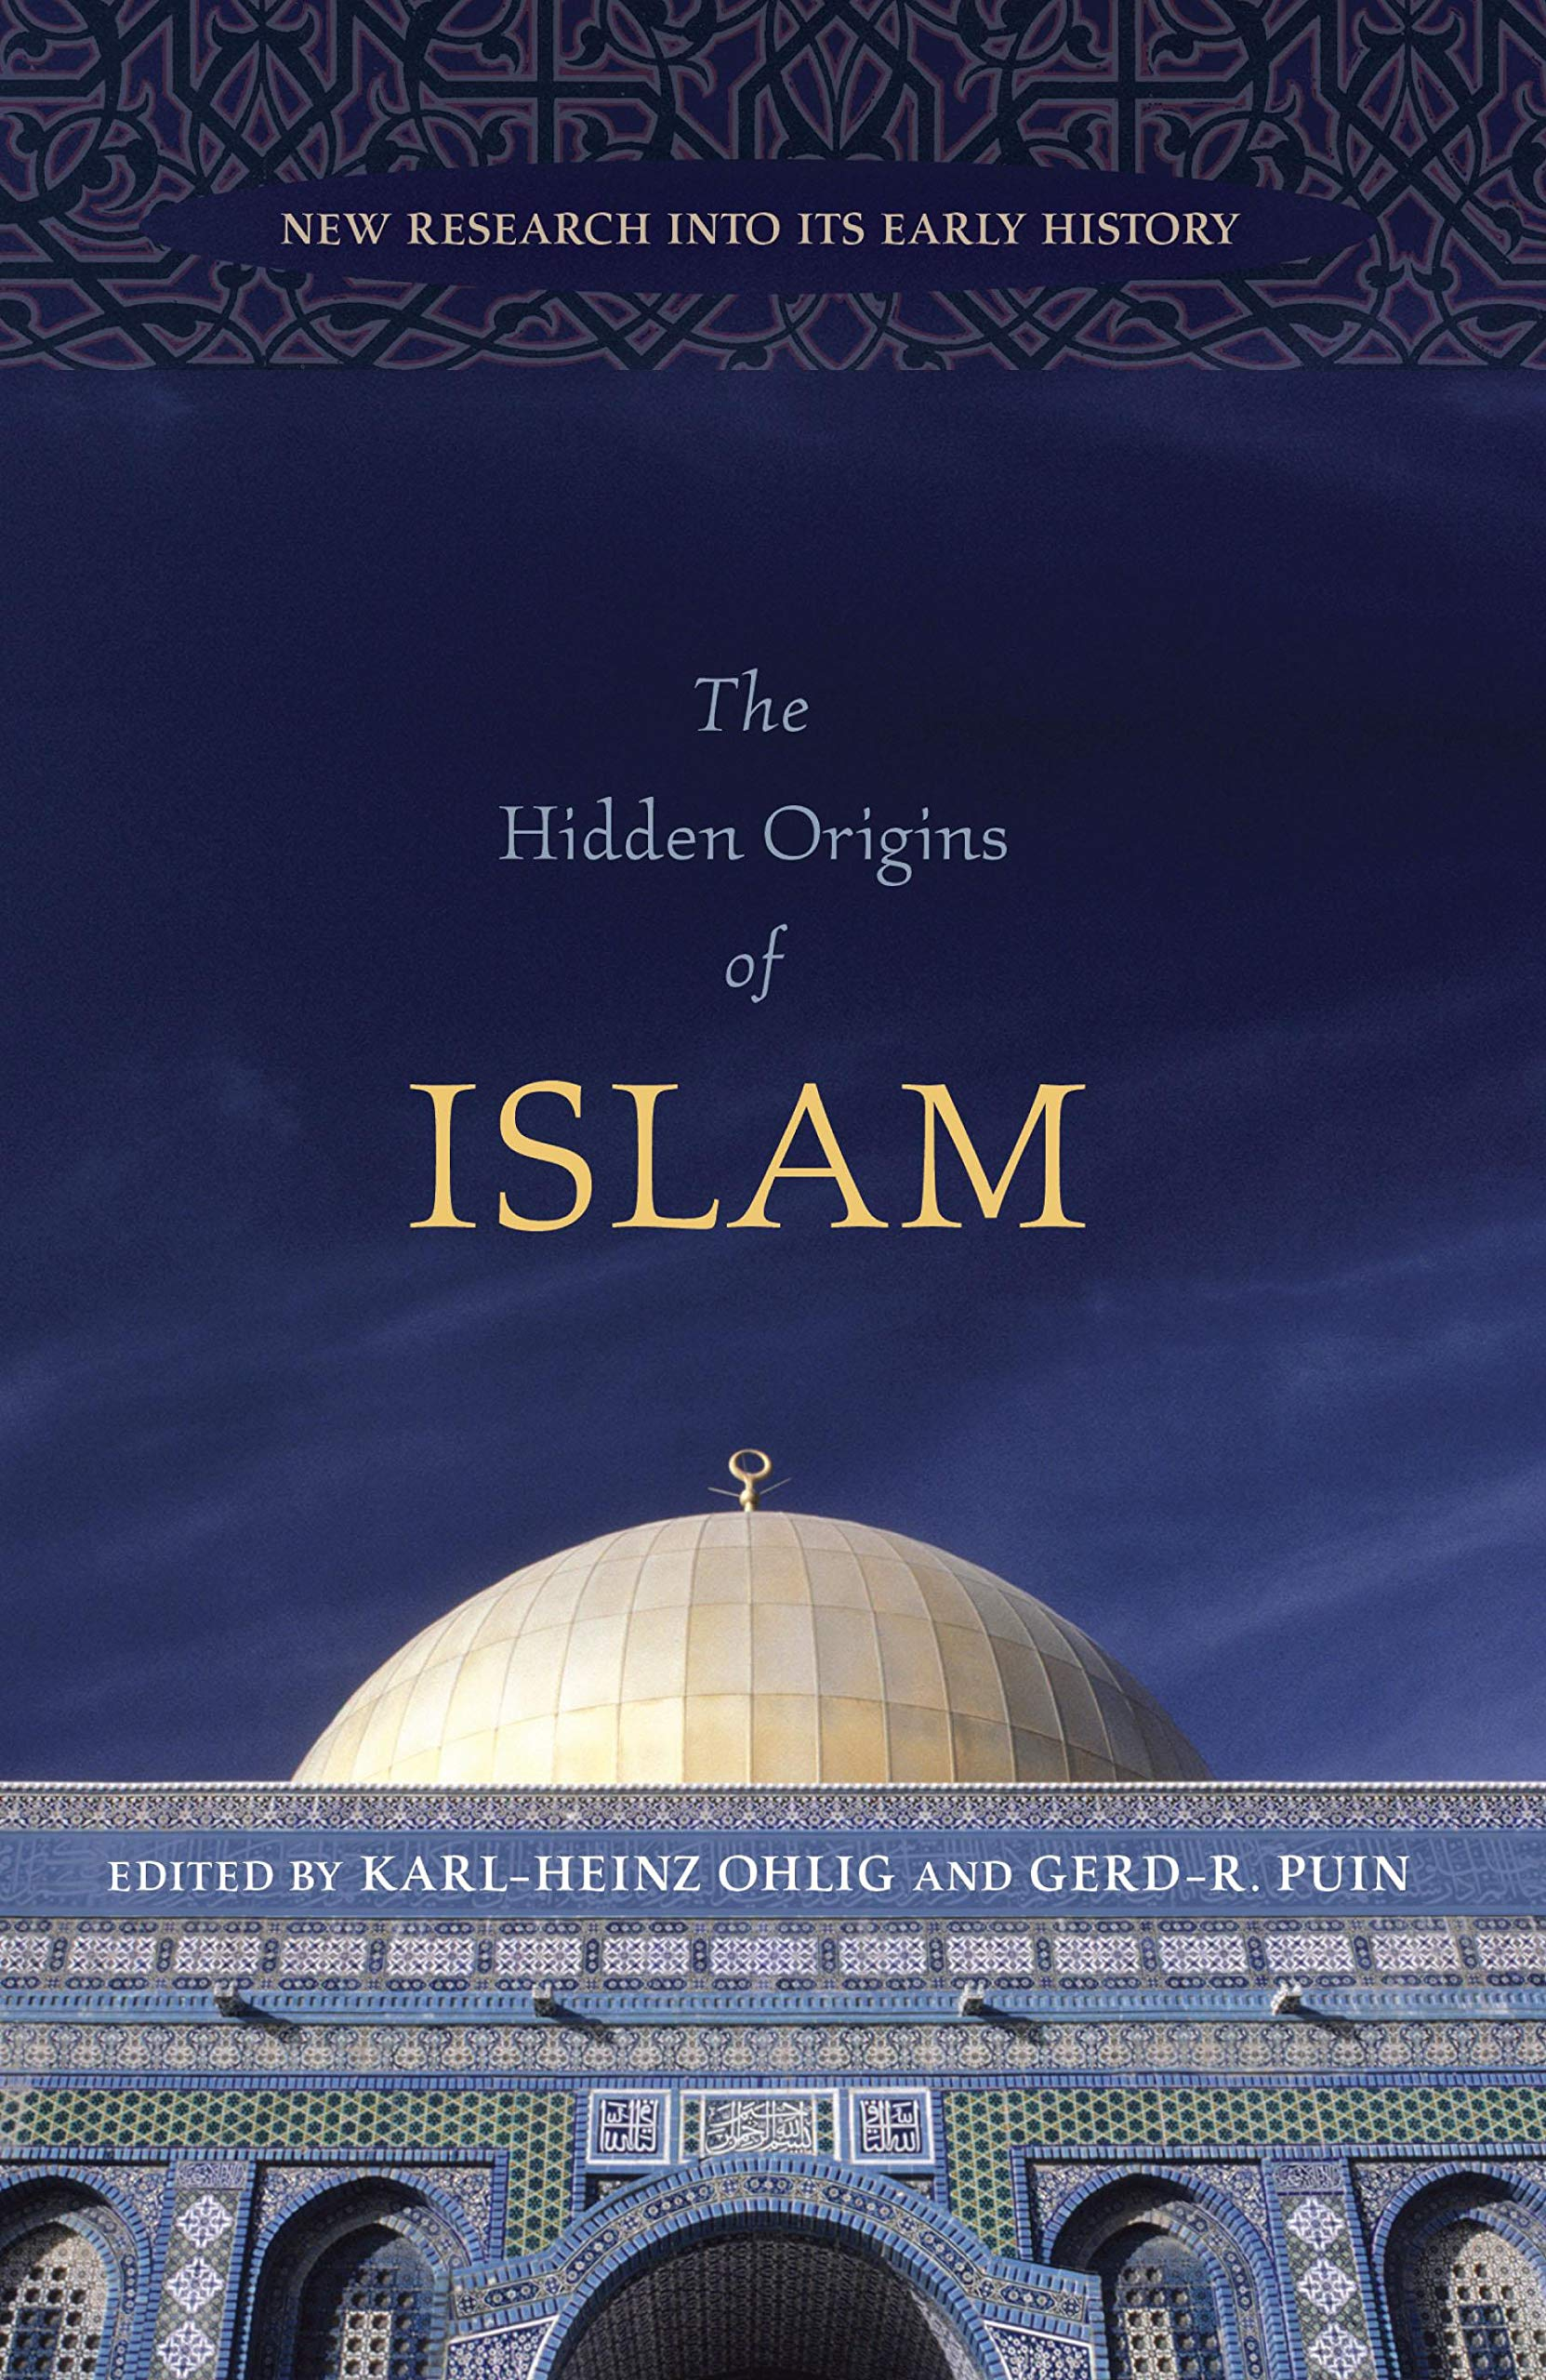 New Research into Its Early History The Hidden Origins of Islam